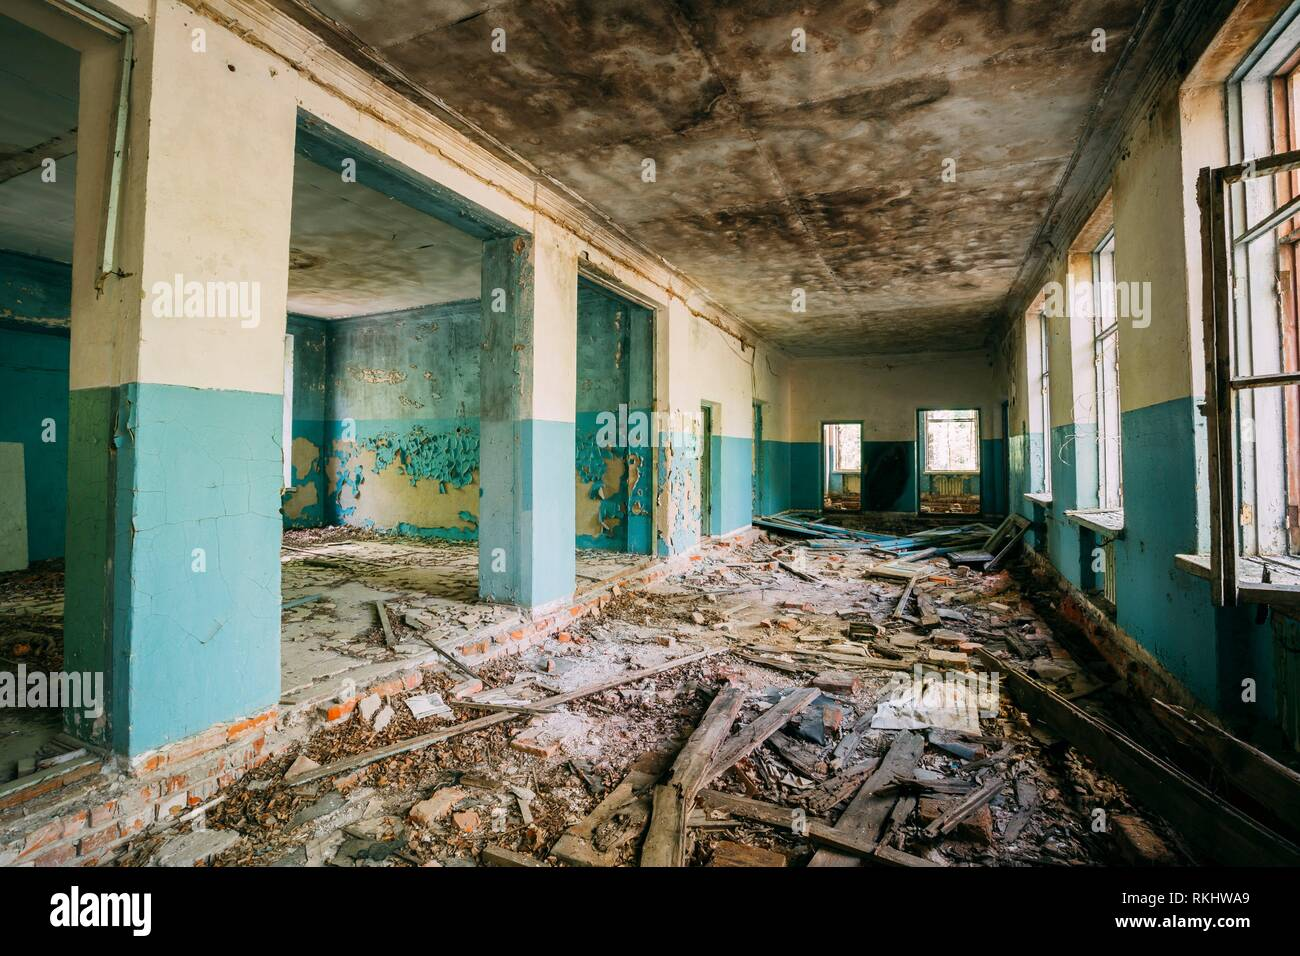 The Ruined Hall Of Abandoned Rural School After Chernobyl Disaster In Evacuation Zone. The Terrible Consequences Of The Nuclear Pollution Twenty Stock Photo